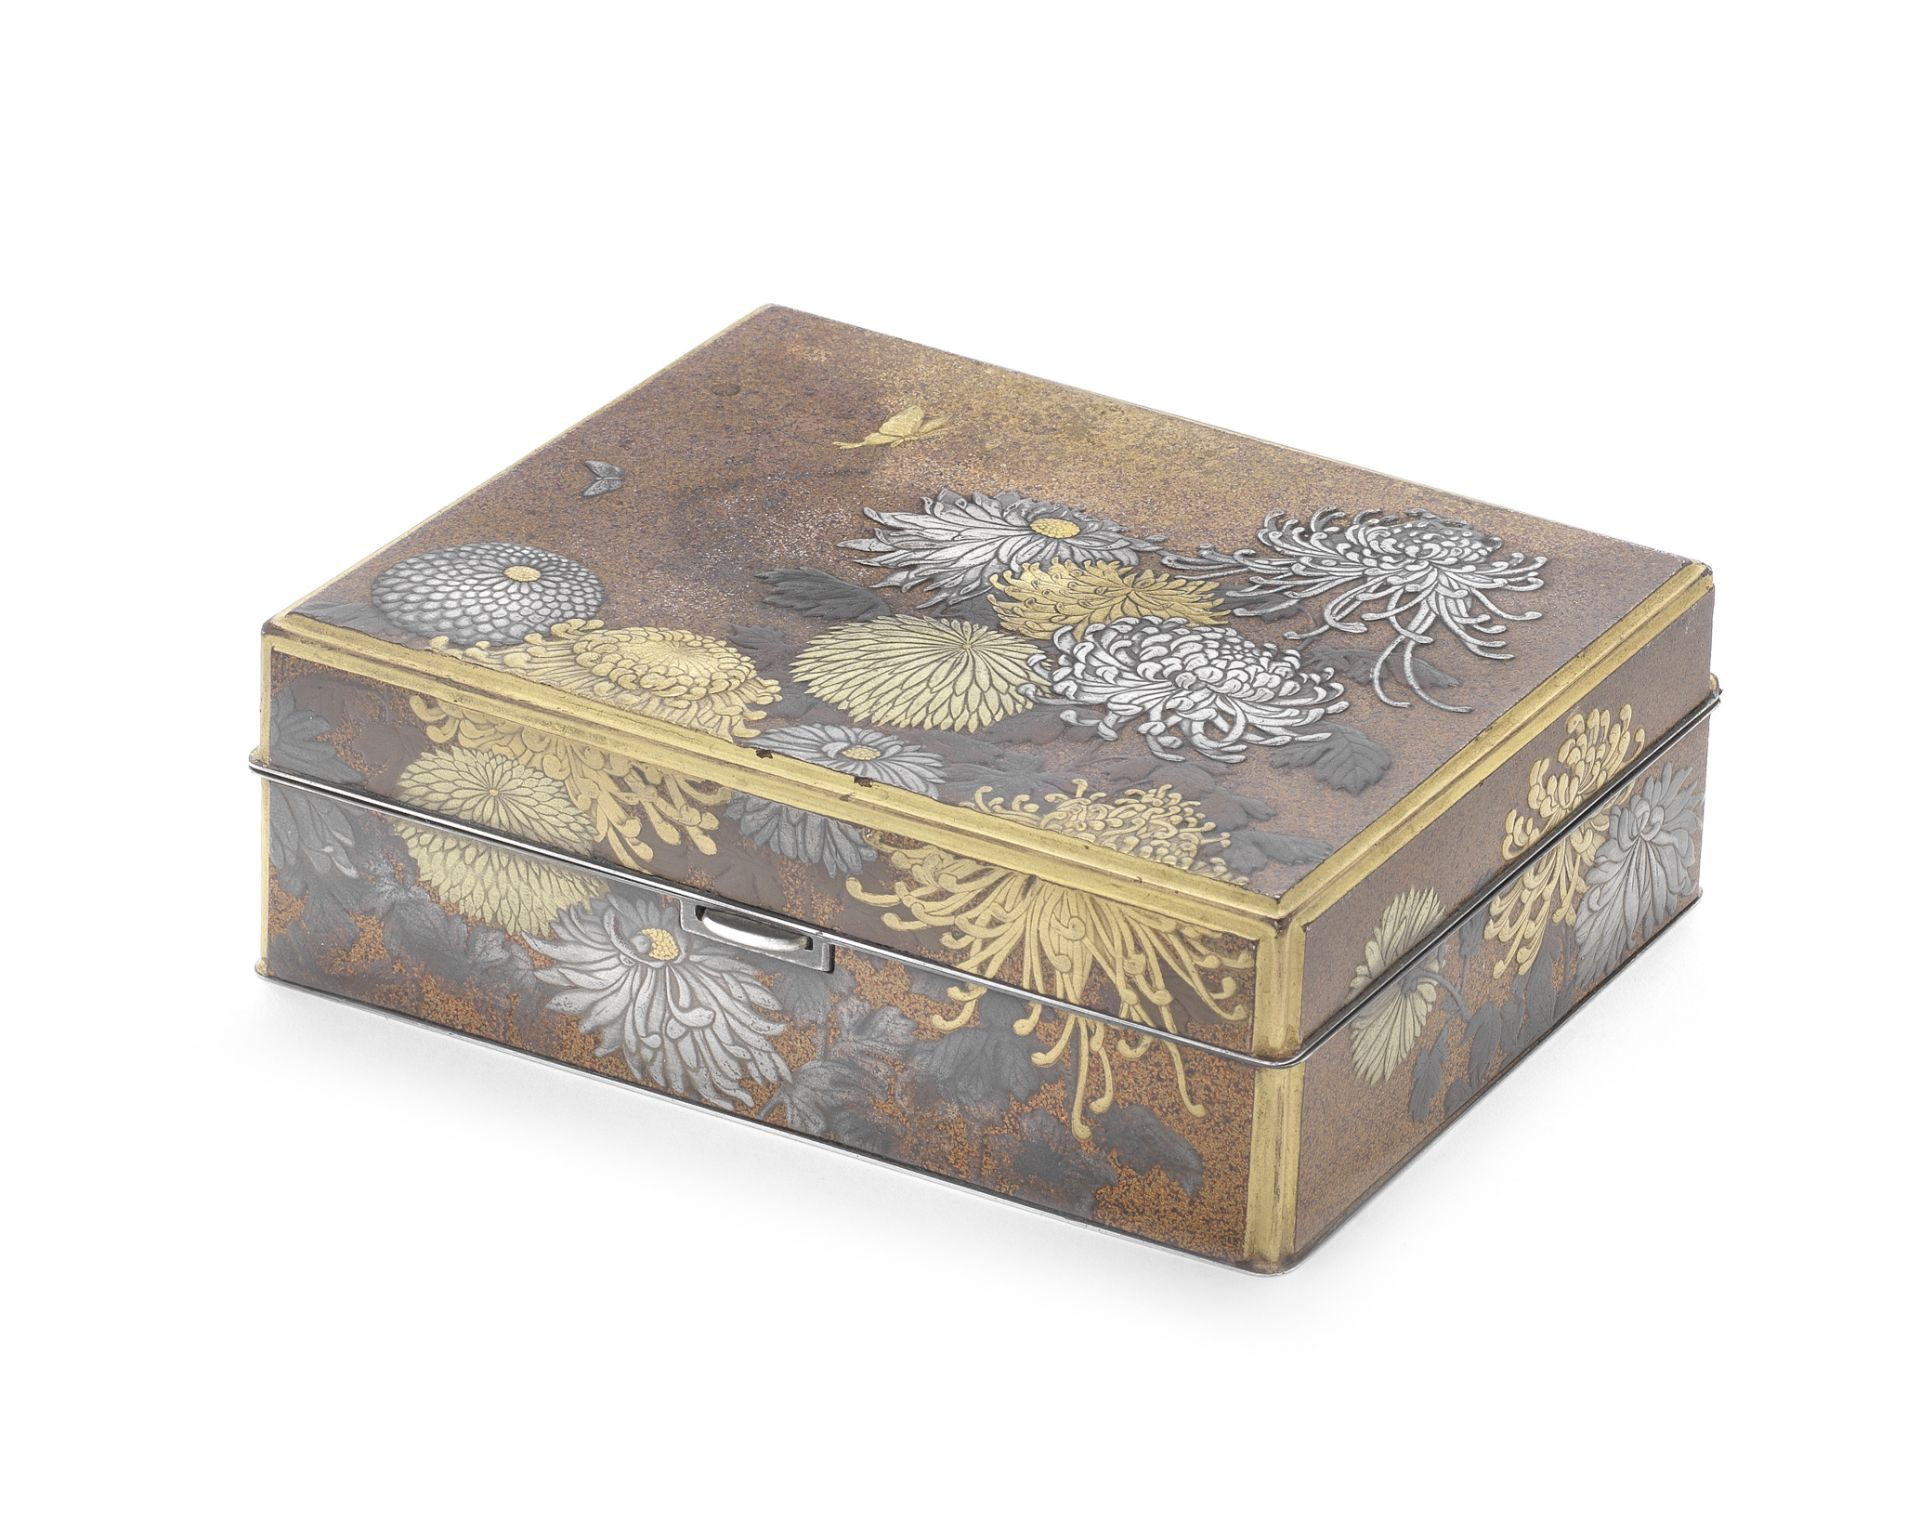 A Japanese silver and lacquer trinket box early 20th century